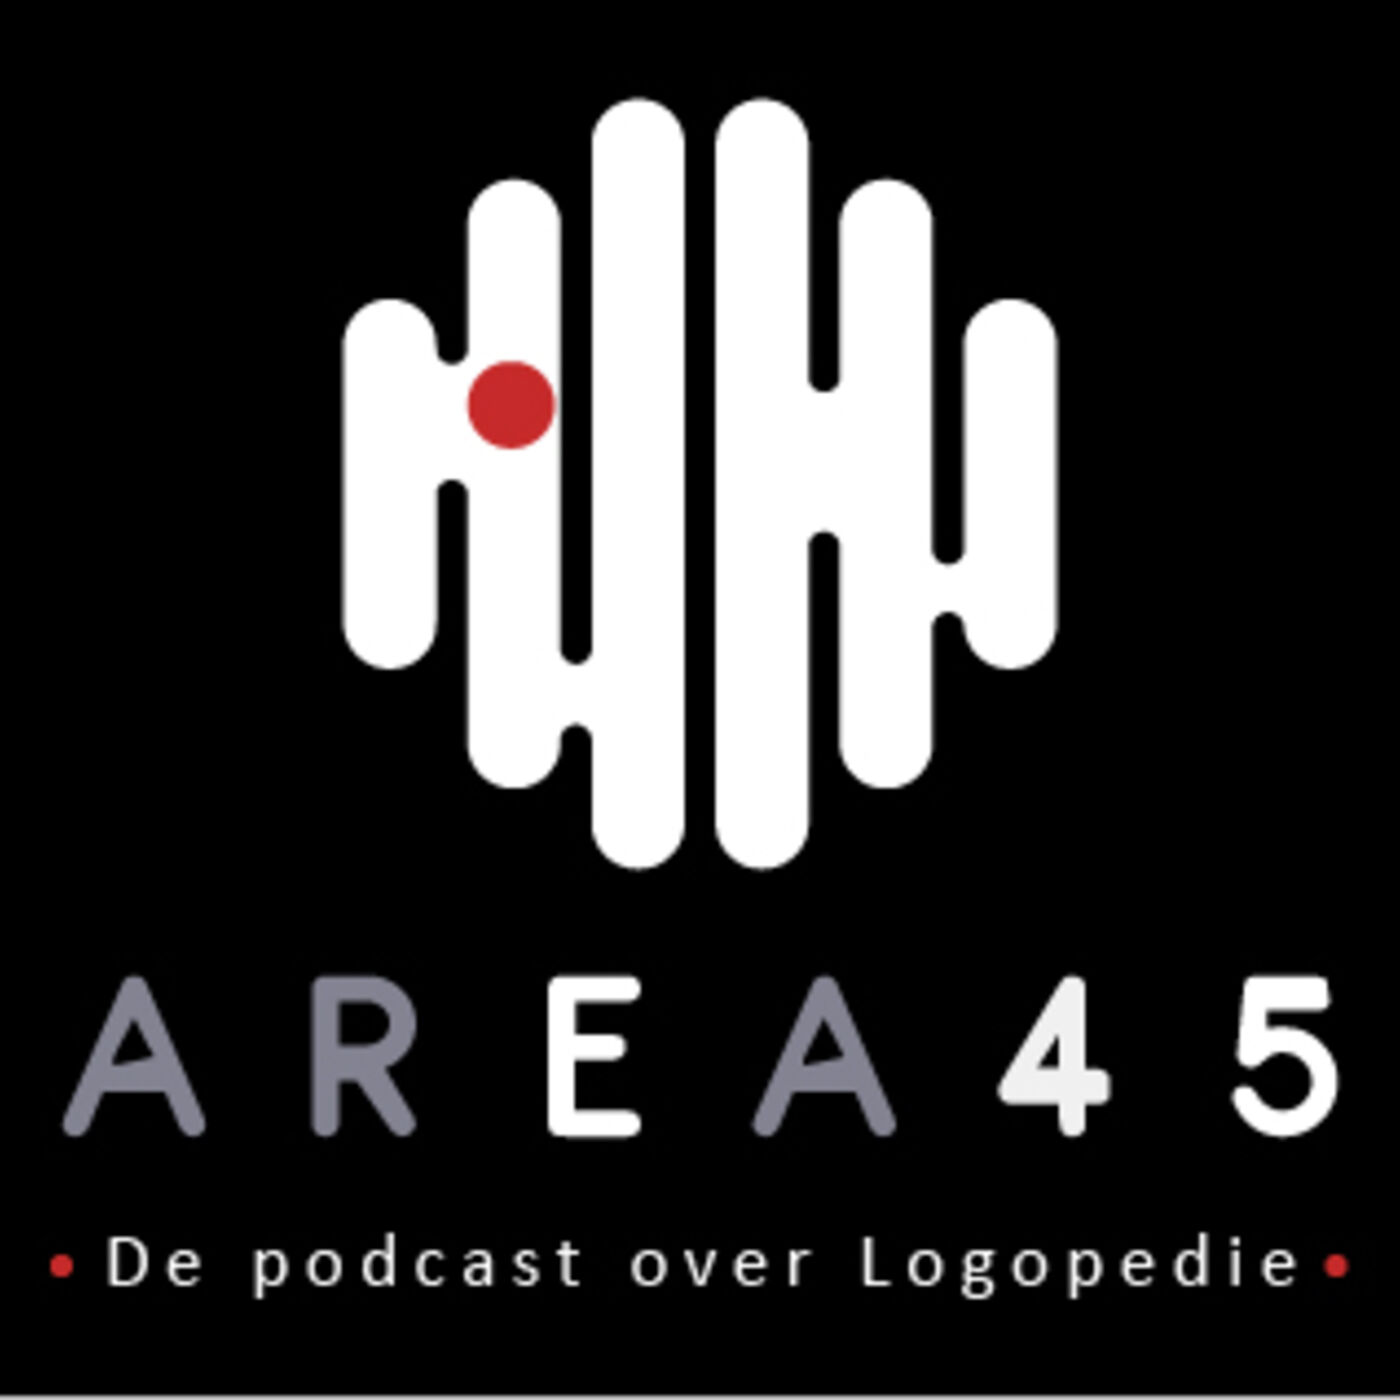 Area 45 - De podcast over logopedie logo